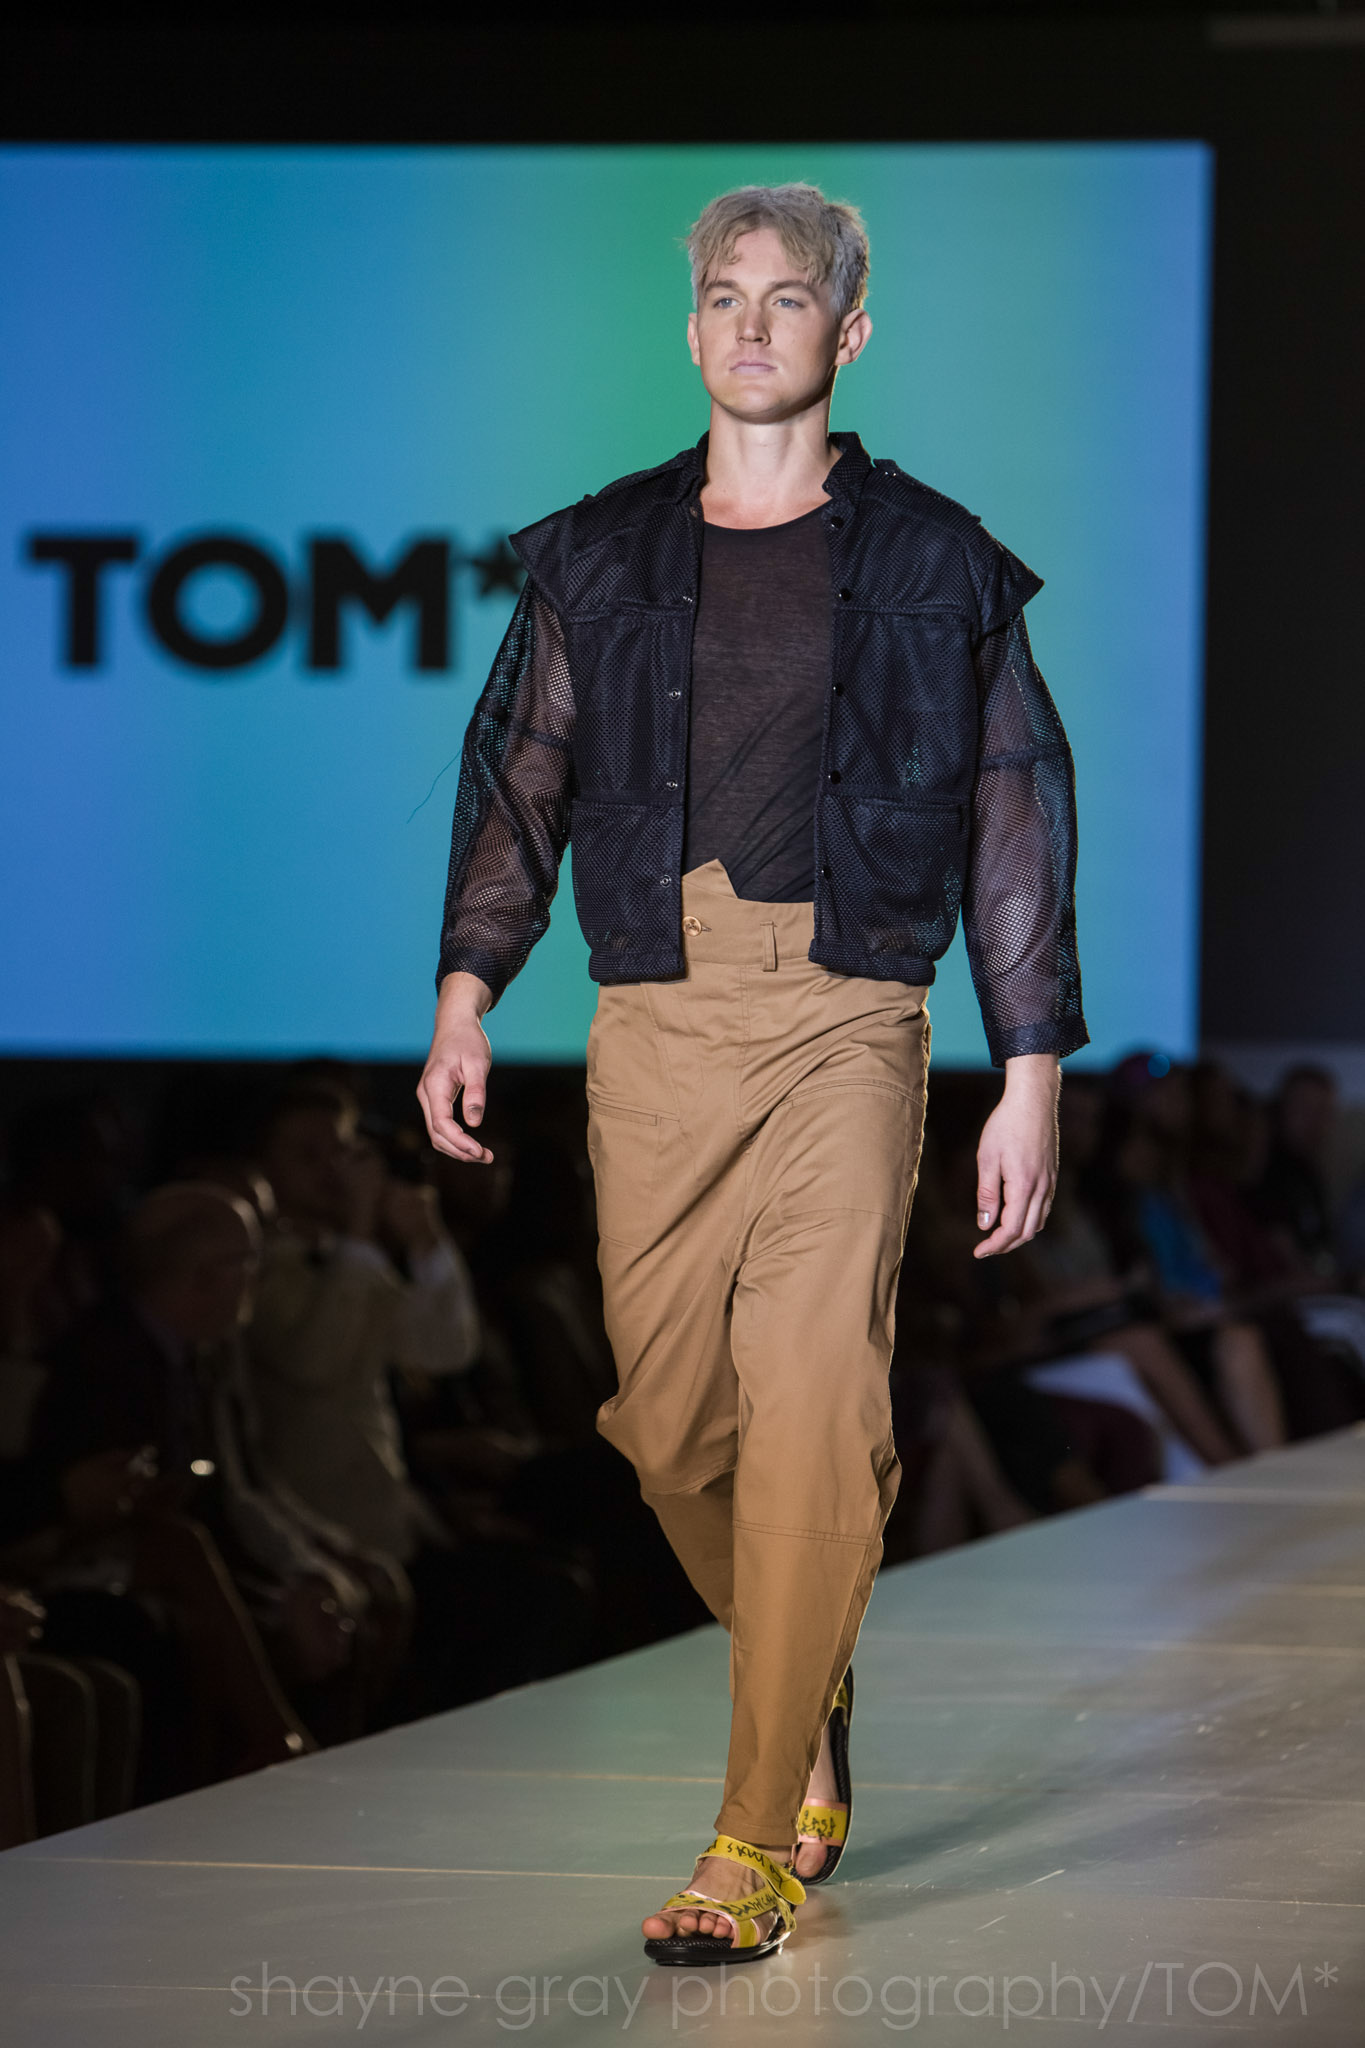 Shayne-Gray-Toronto-men's-fashion_week-TOM-jose-duran-7774.jpg